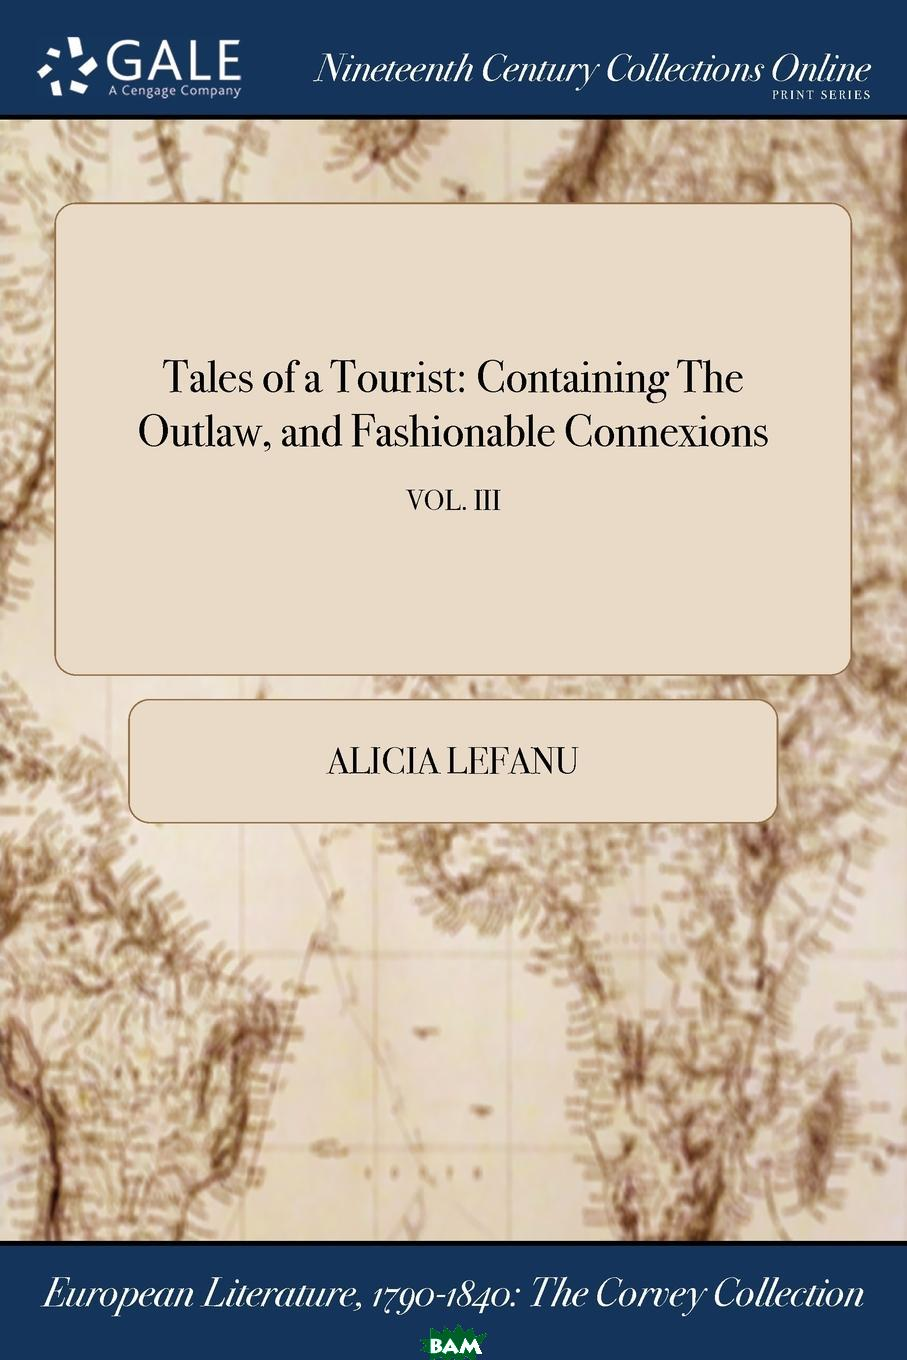 Купить Tales of a Tourist. Containing The Outlaw, and Fashionable Connexions; VOL. III, Alicia Lefanu, 9781375065566